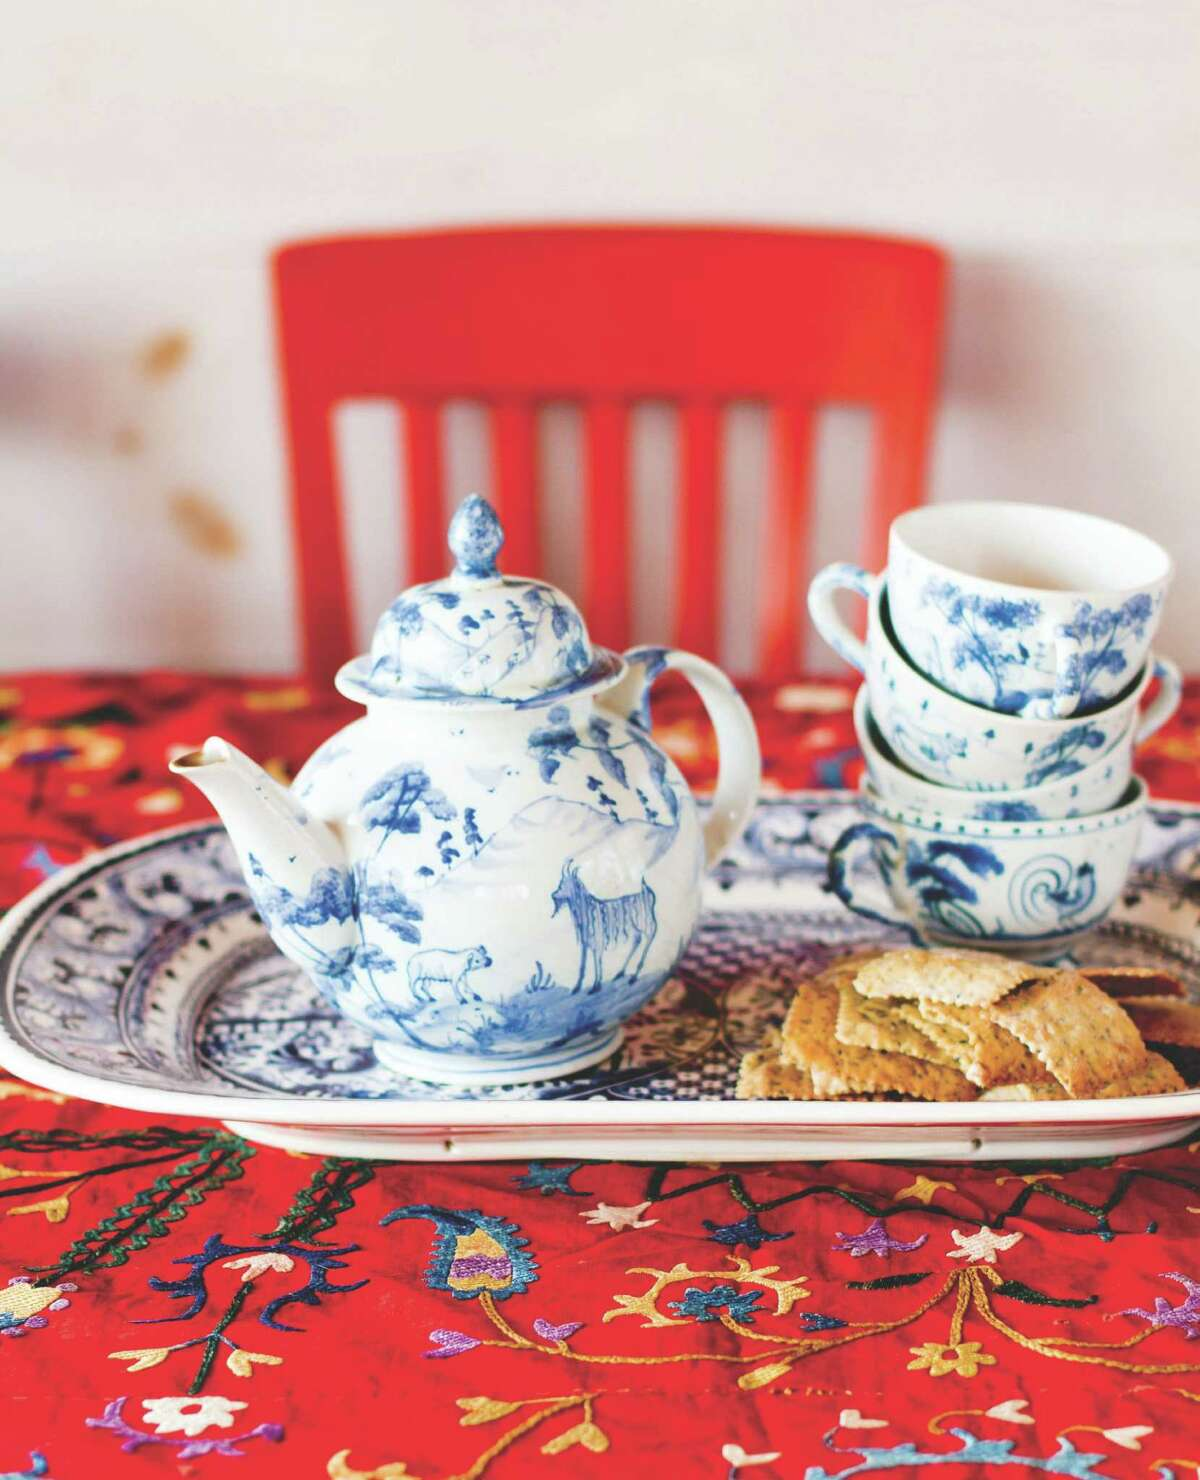 """A mix of red, white and blue doesn't have to look like the Fourth of July. This tea set and tablecloth, below, from """"Crafting a Colorful Home"""" by Kristin Nicholas, are more Asian than Americana."""